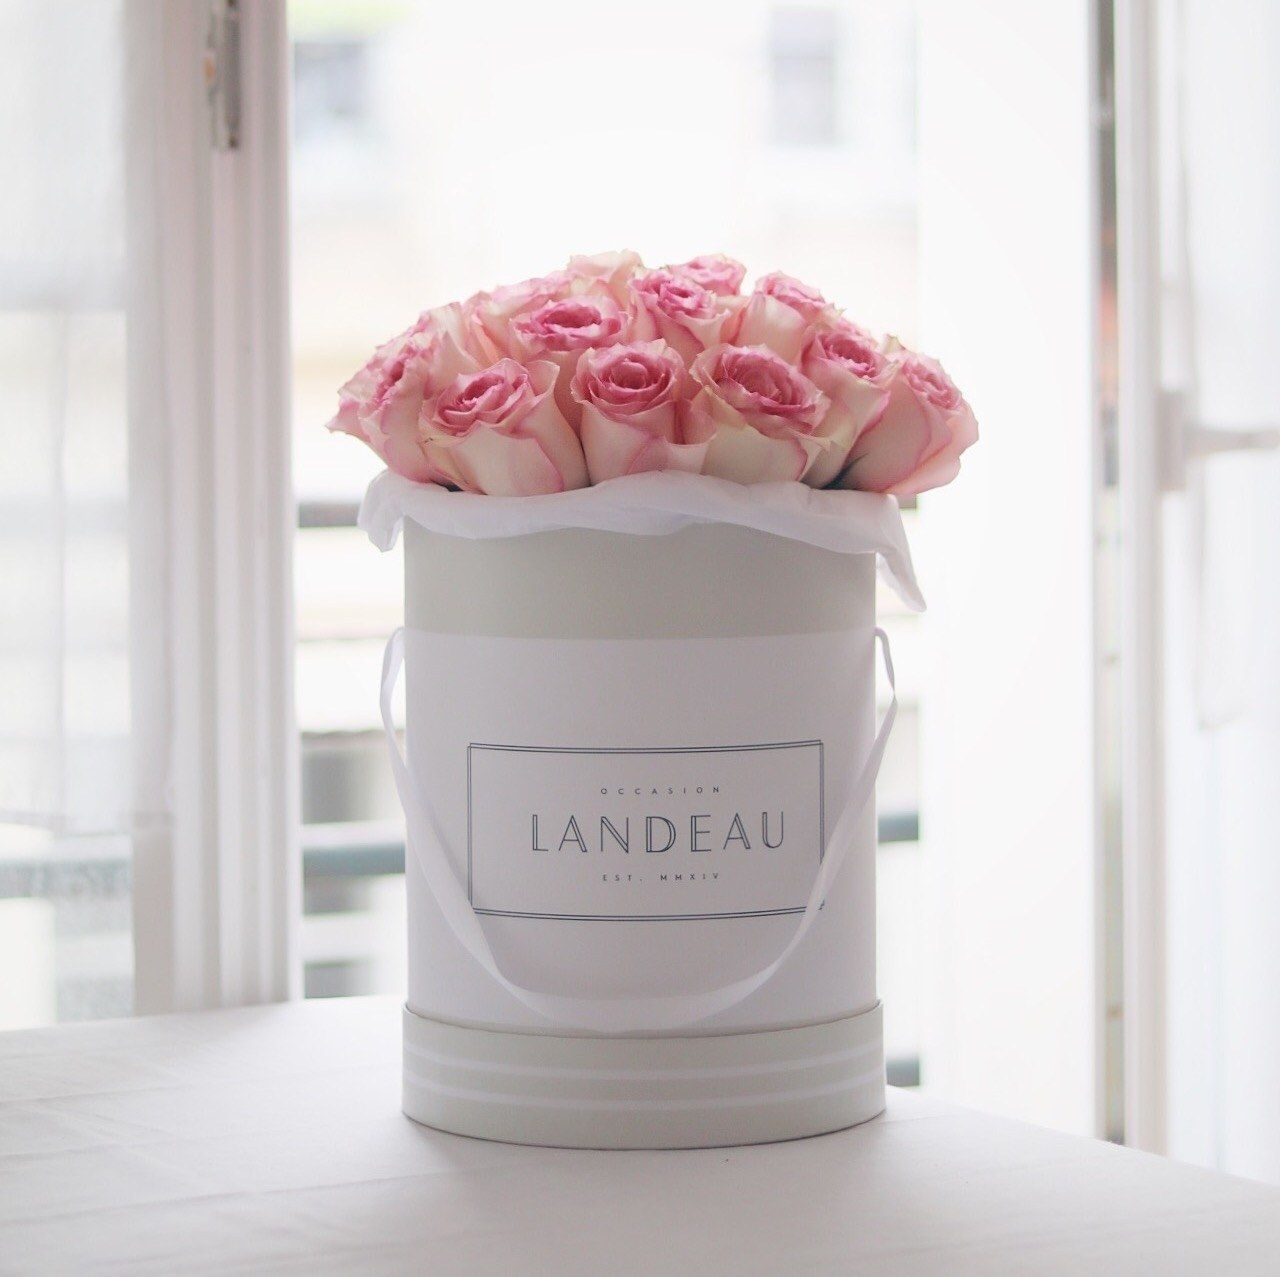 10 luxe flower delivery services for when you forget your moms 10 luxe flower delivery services for when you forget your moms birthday izmirmasajfo Image collections